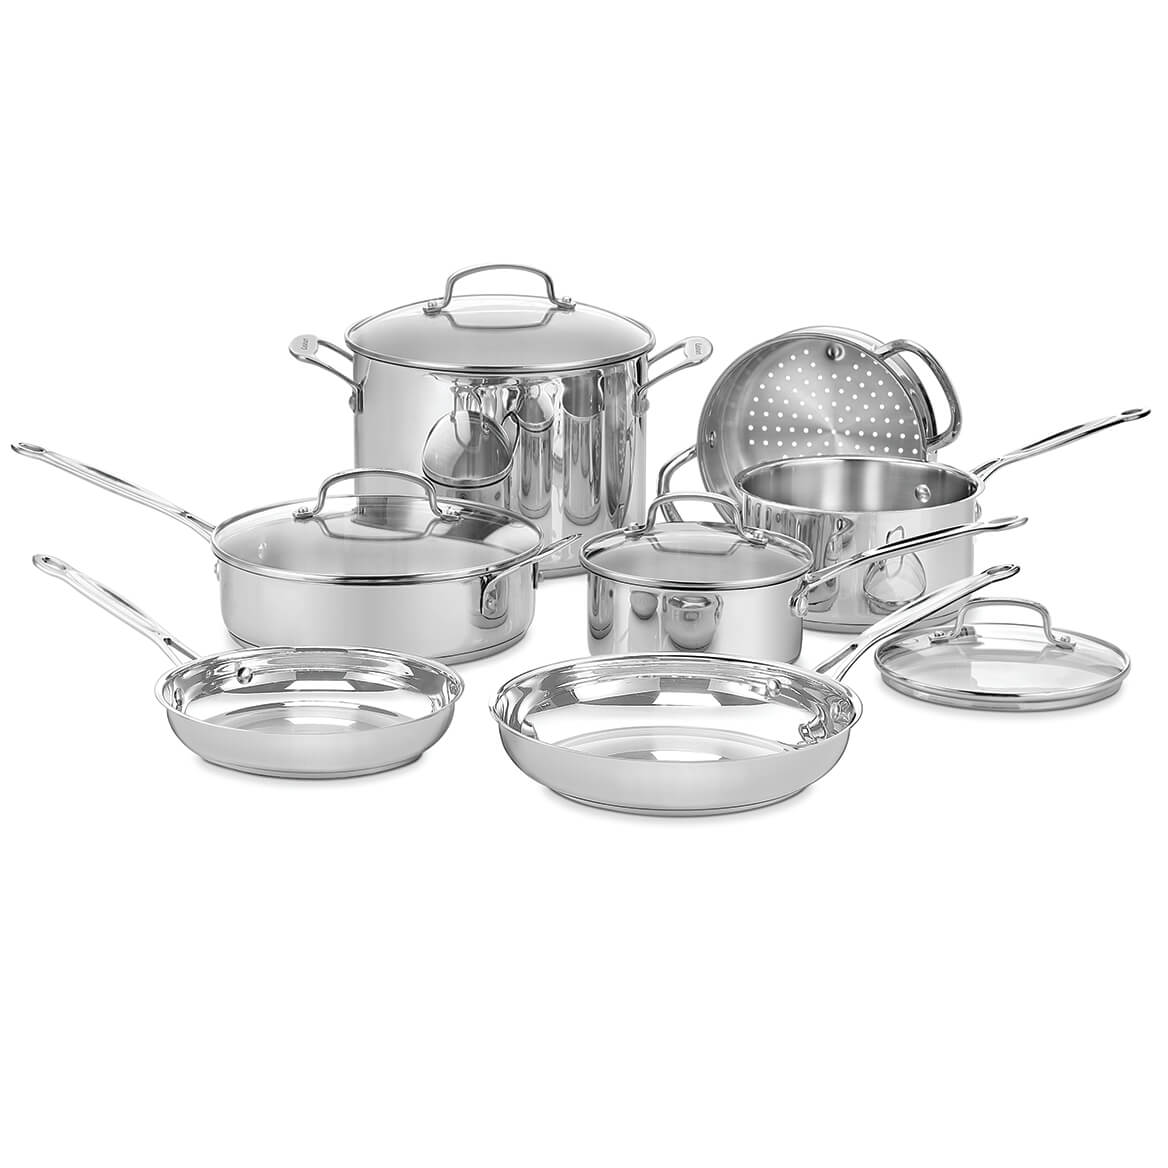 Cuisinart Chef's Classic Cookware Set, 11 Pieces